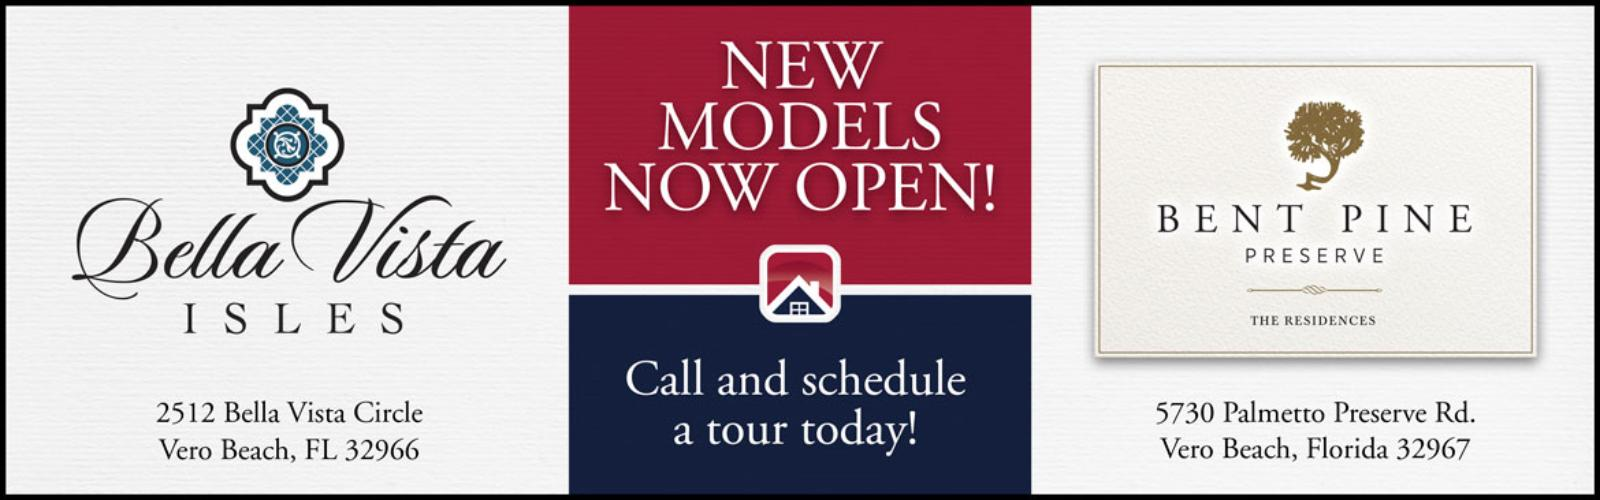 BVI and BPP models open